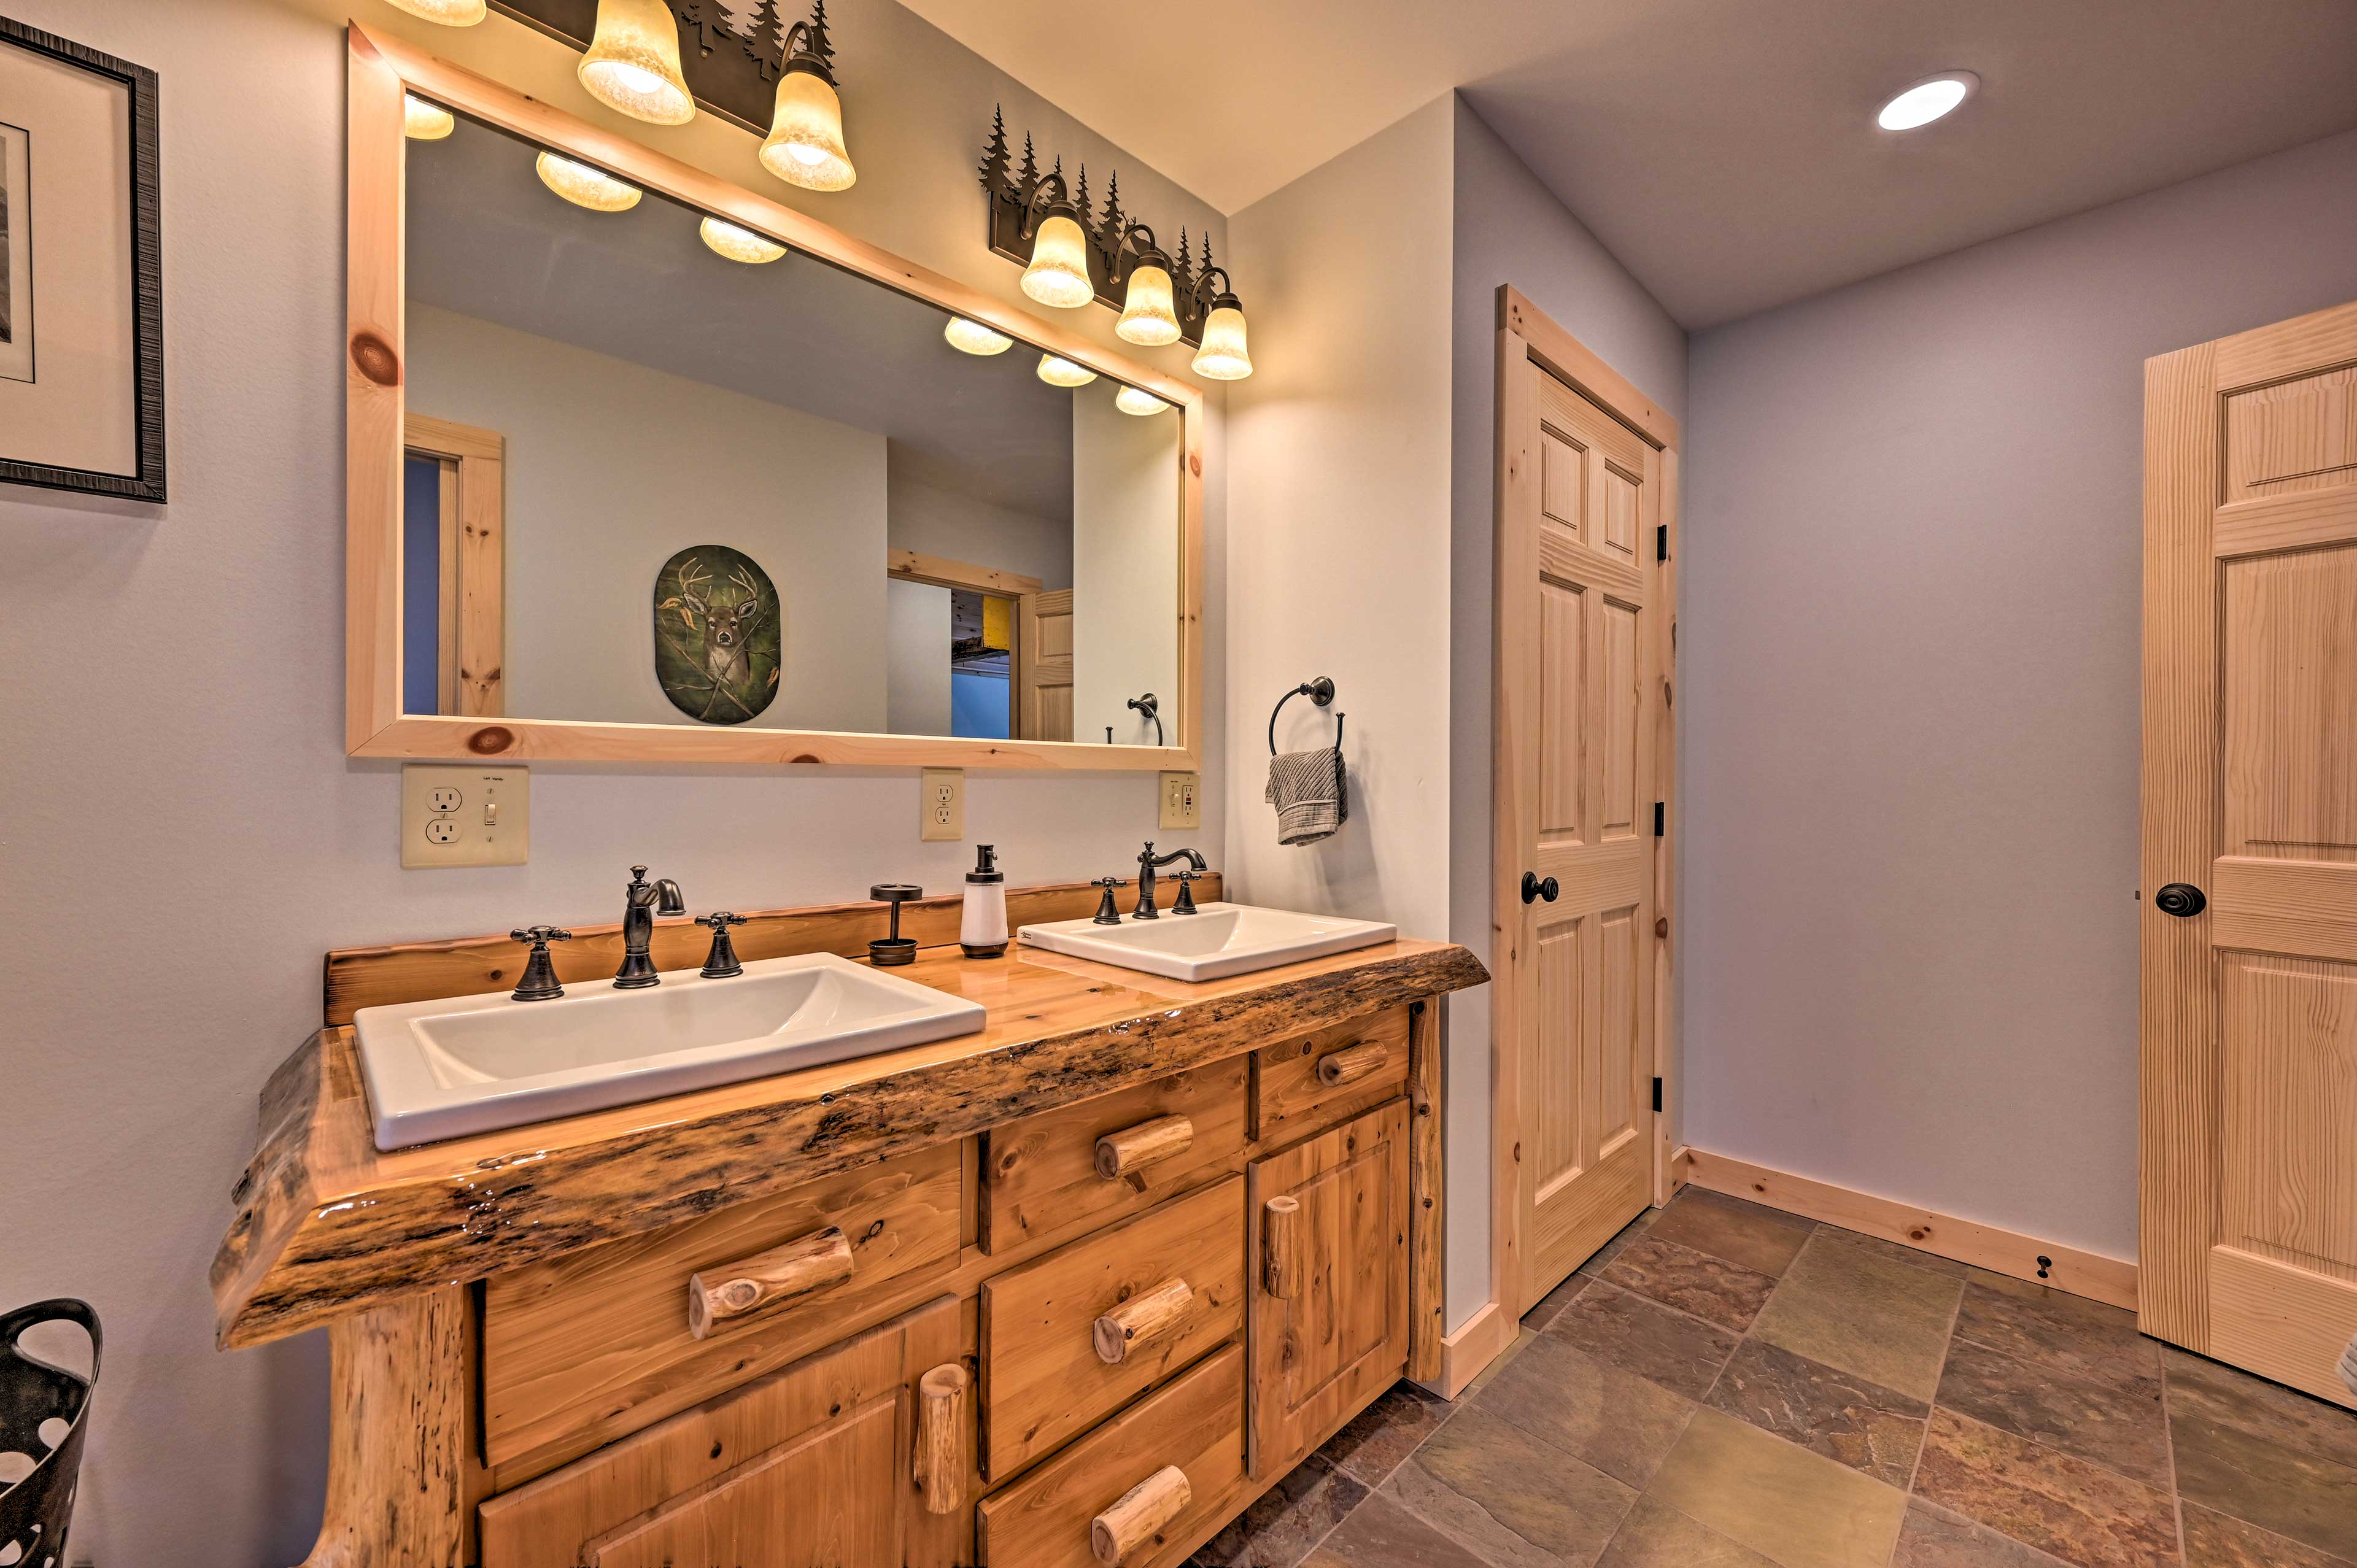 Get ready with your companion in the master bathroom with dual sinks.